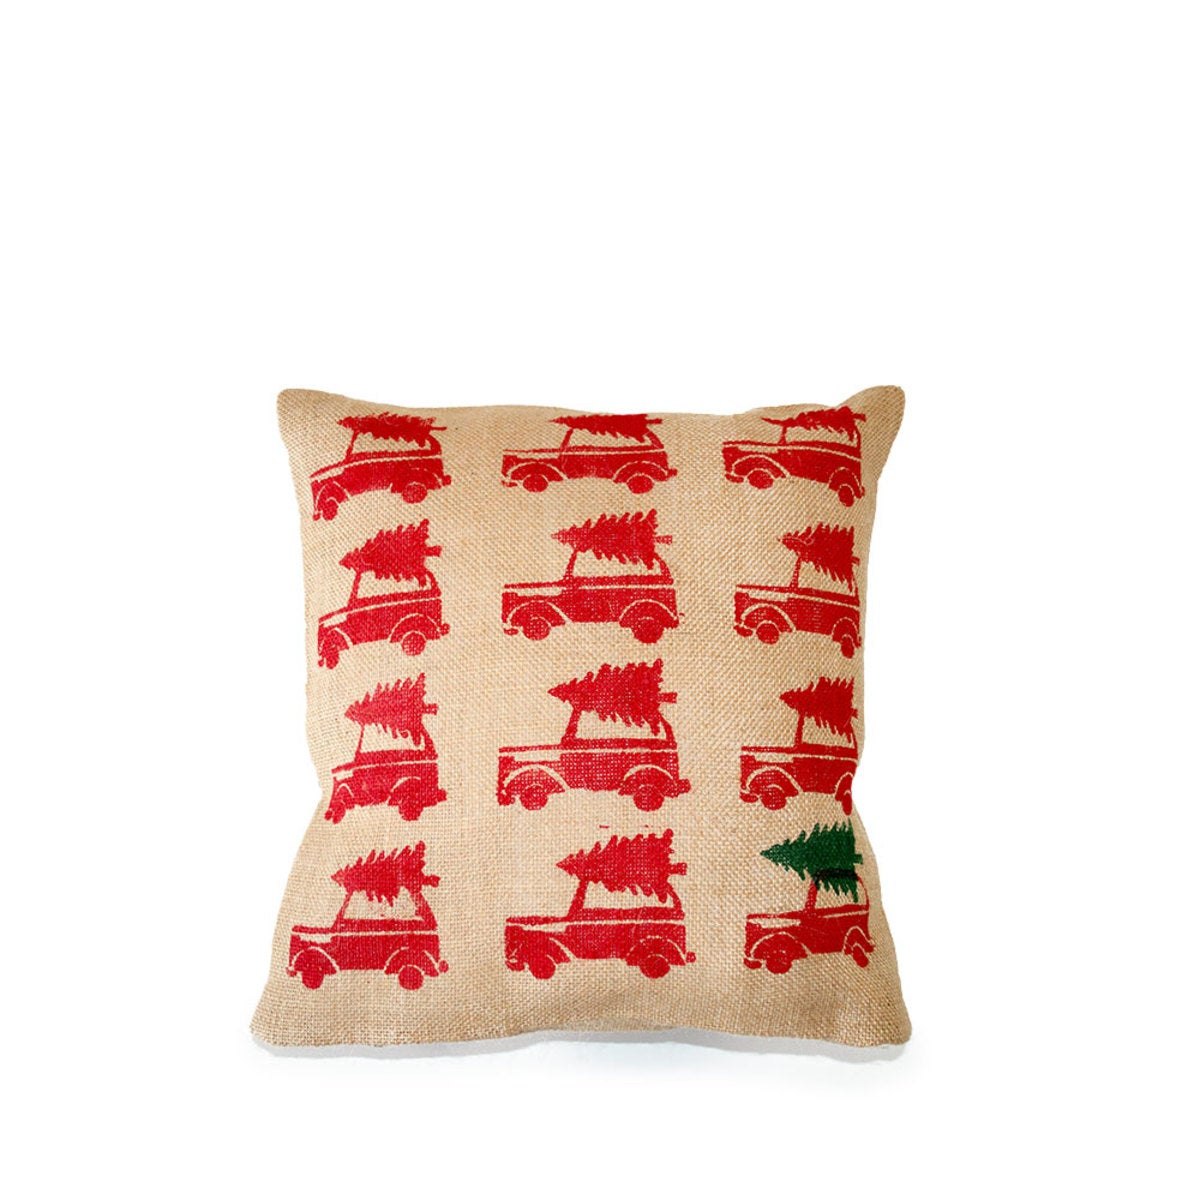 Christmas Wagon Decorative Pillow - Red with Dark Green